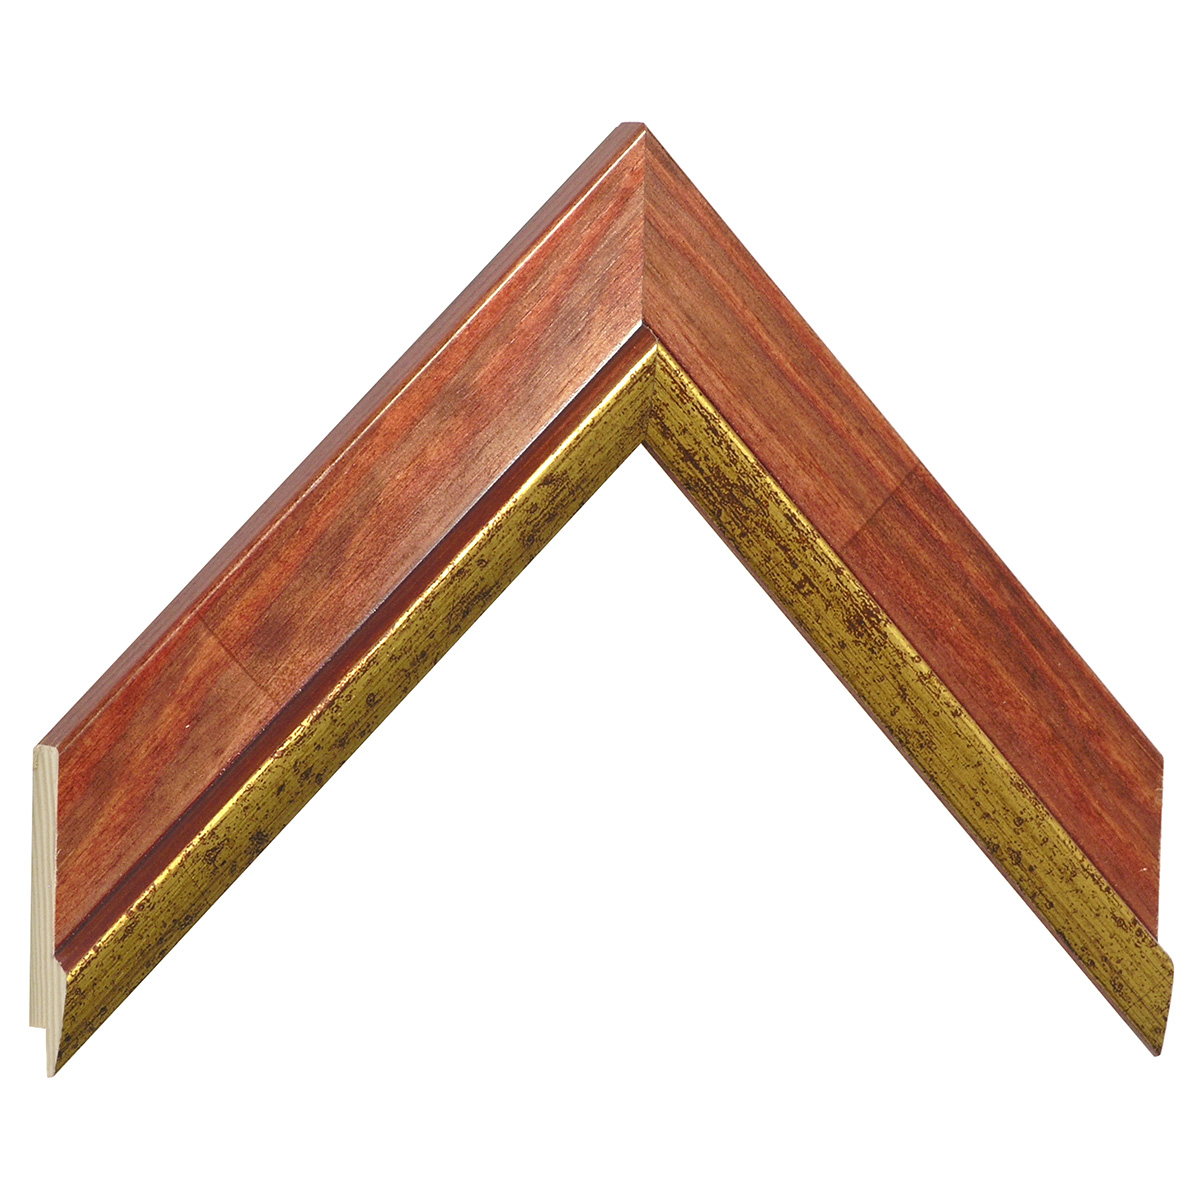 Moulding pine 39mm - mahogany colour with gold edge